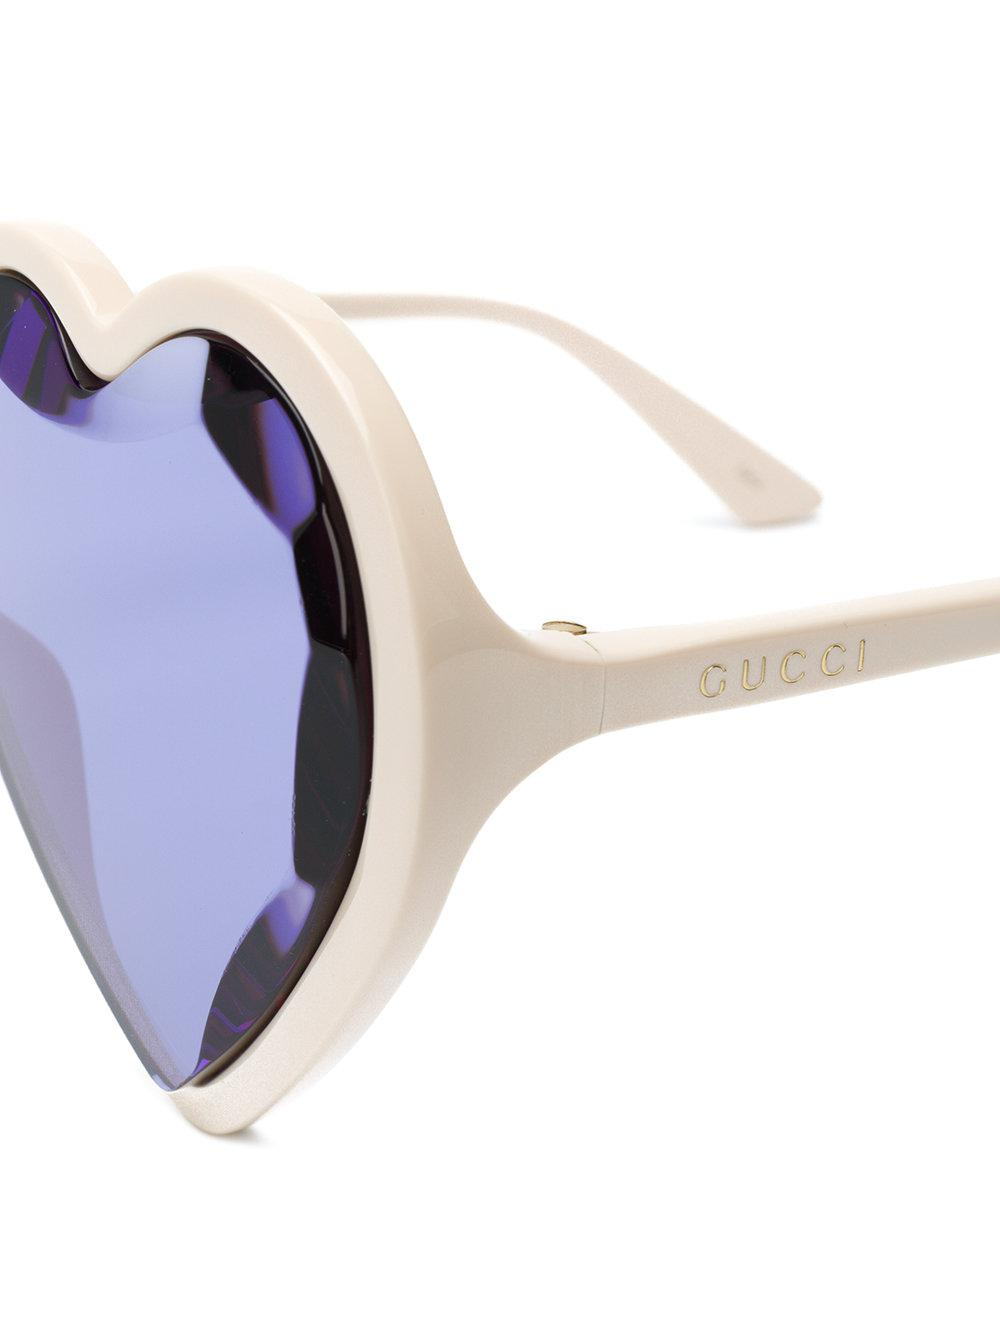 3c9c4cb01c8 Gucci - White Jeweled Heart Shape Sunglasses - Lyst. View fullscreen